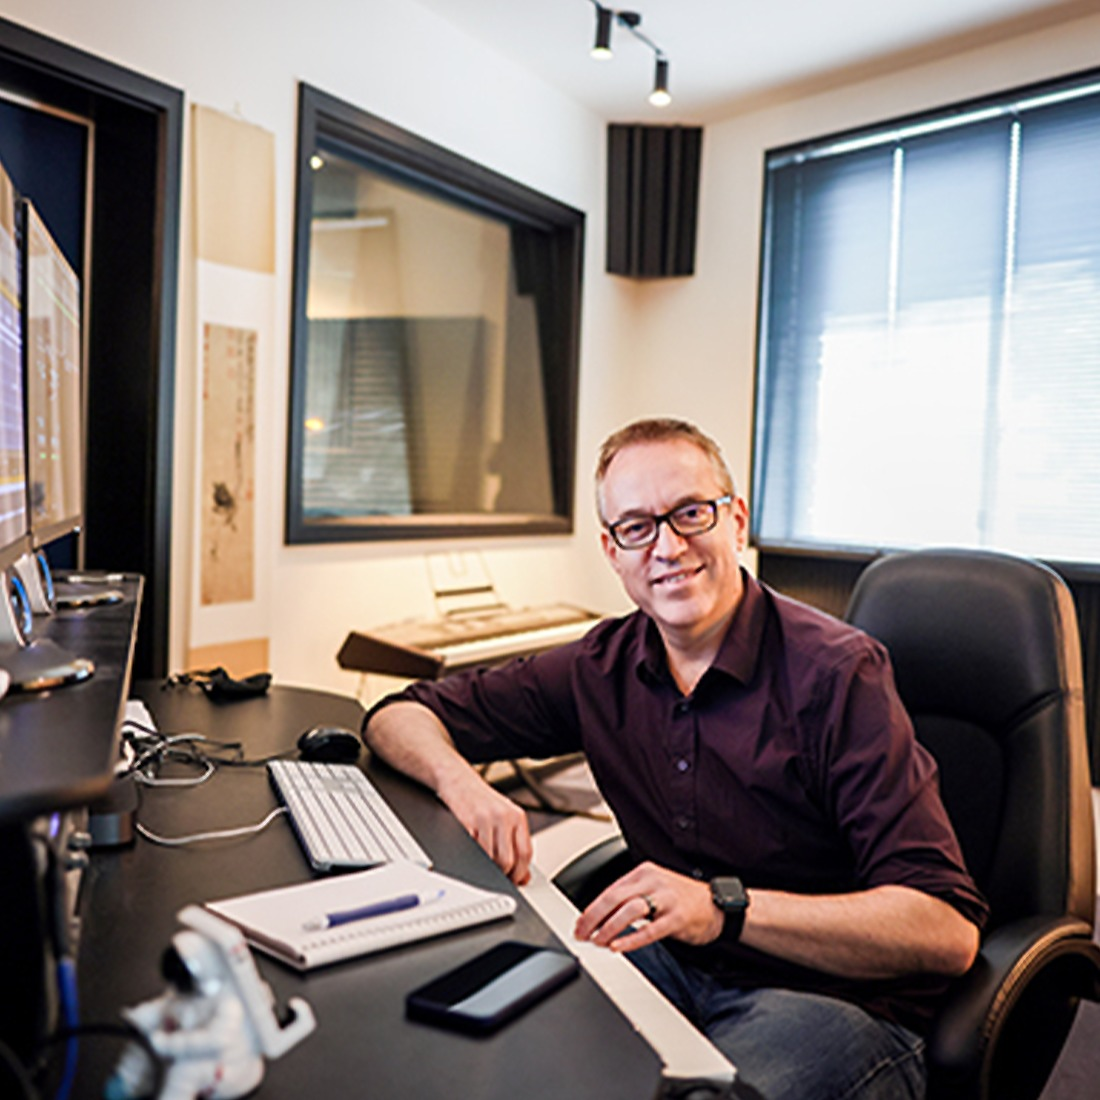 Craig sitting at his desk in his office